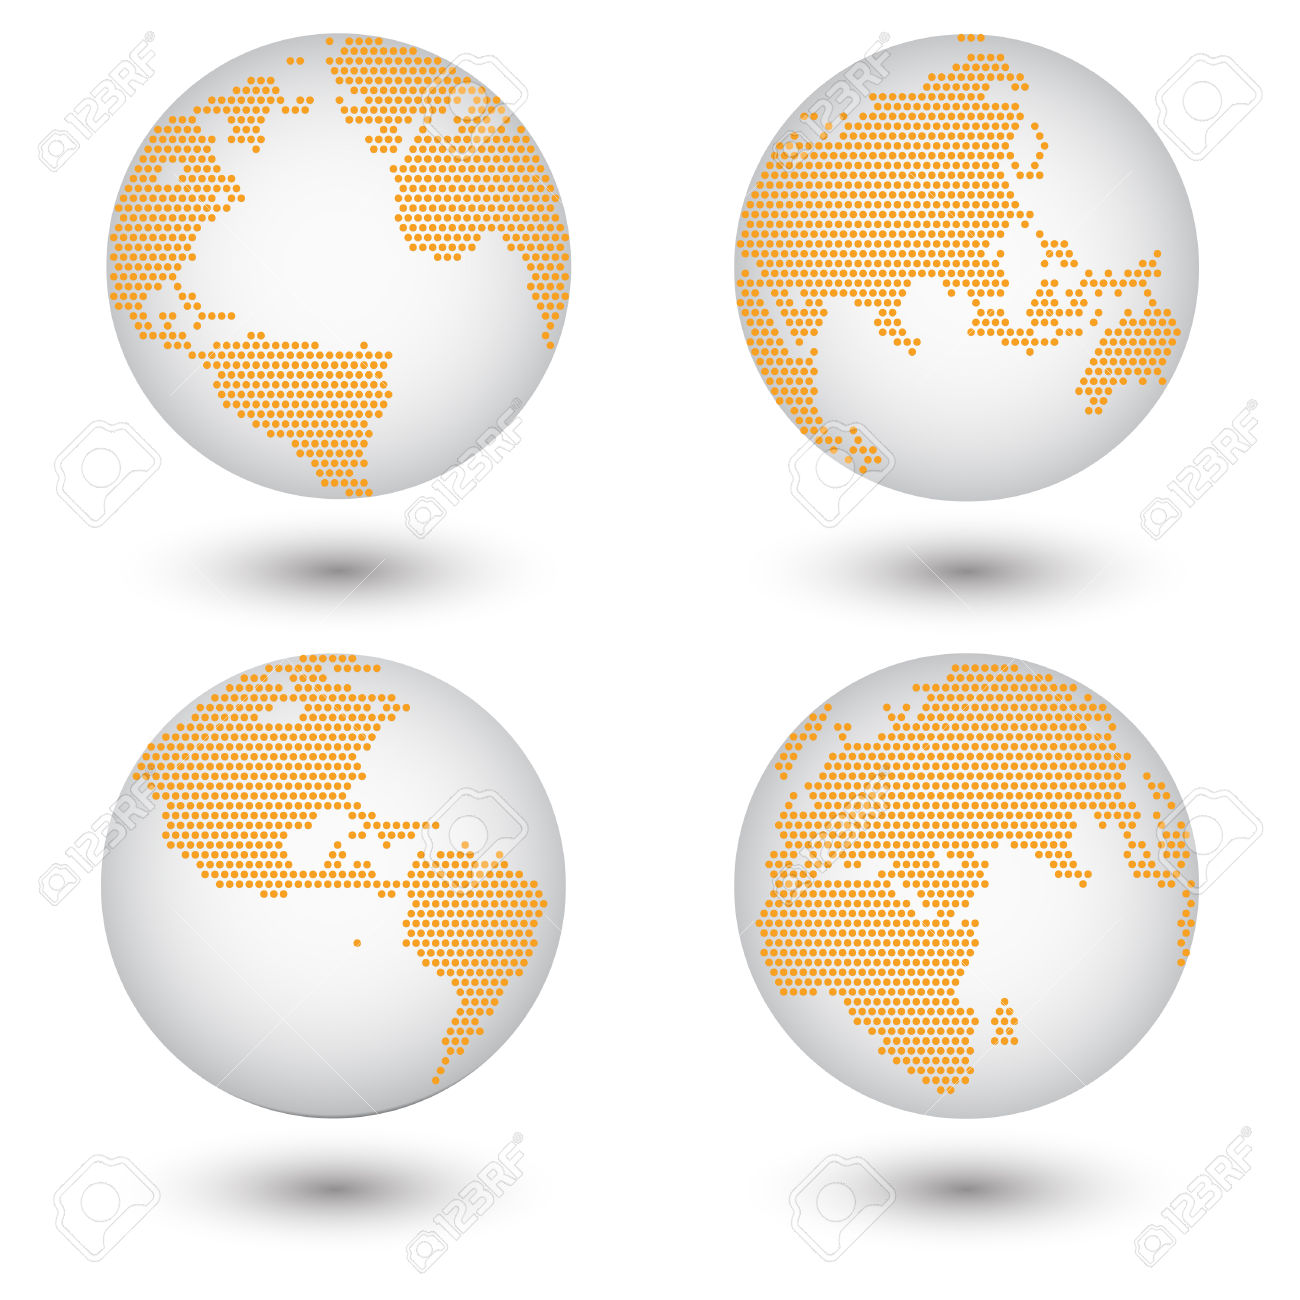 Dotted World Map Globe Made Of Circle Shapes Vector Illustration.